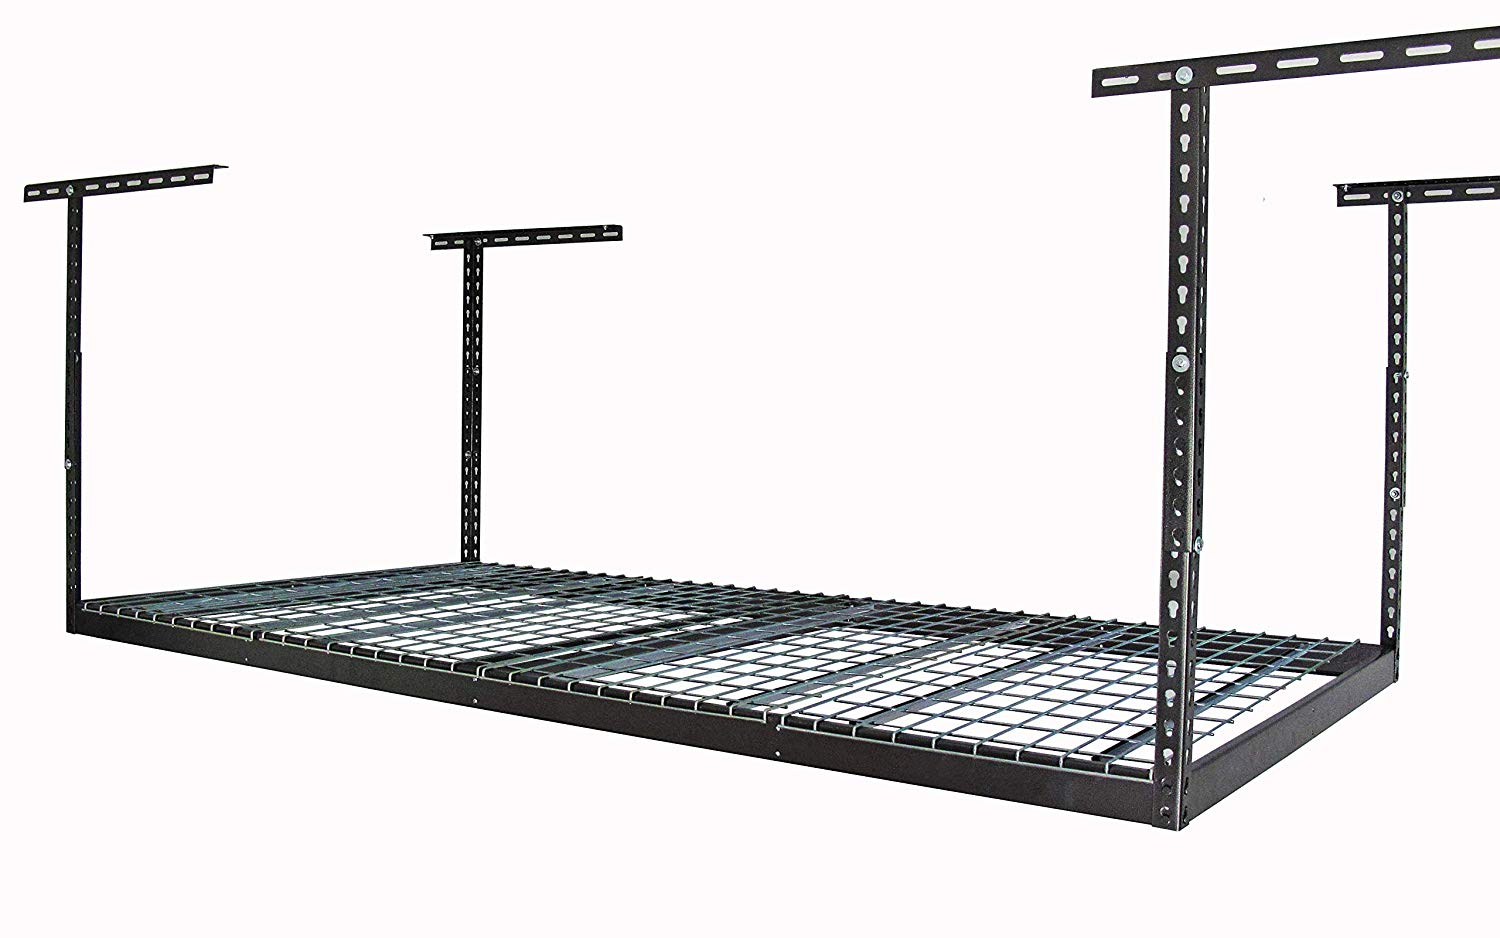 Review of MonsterRax - 4x8 Overhead Garage Storage Rack Heavy Duty (24